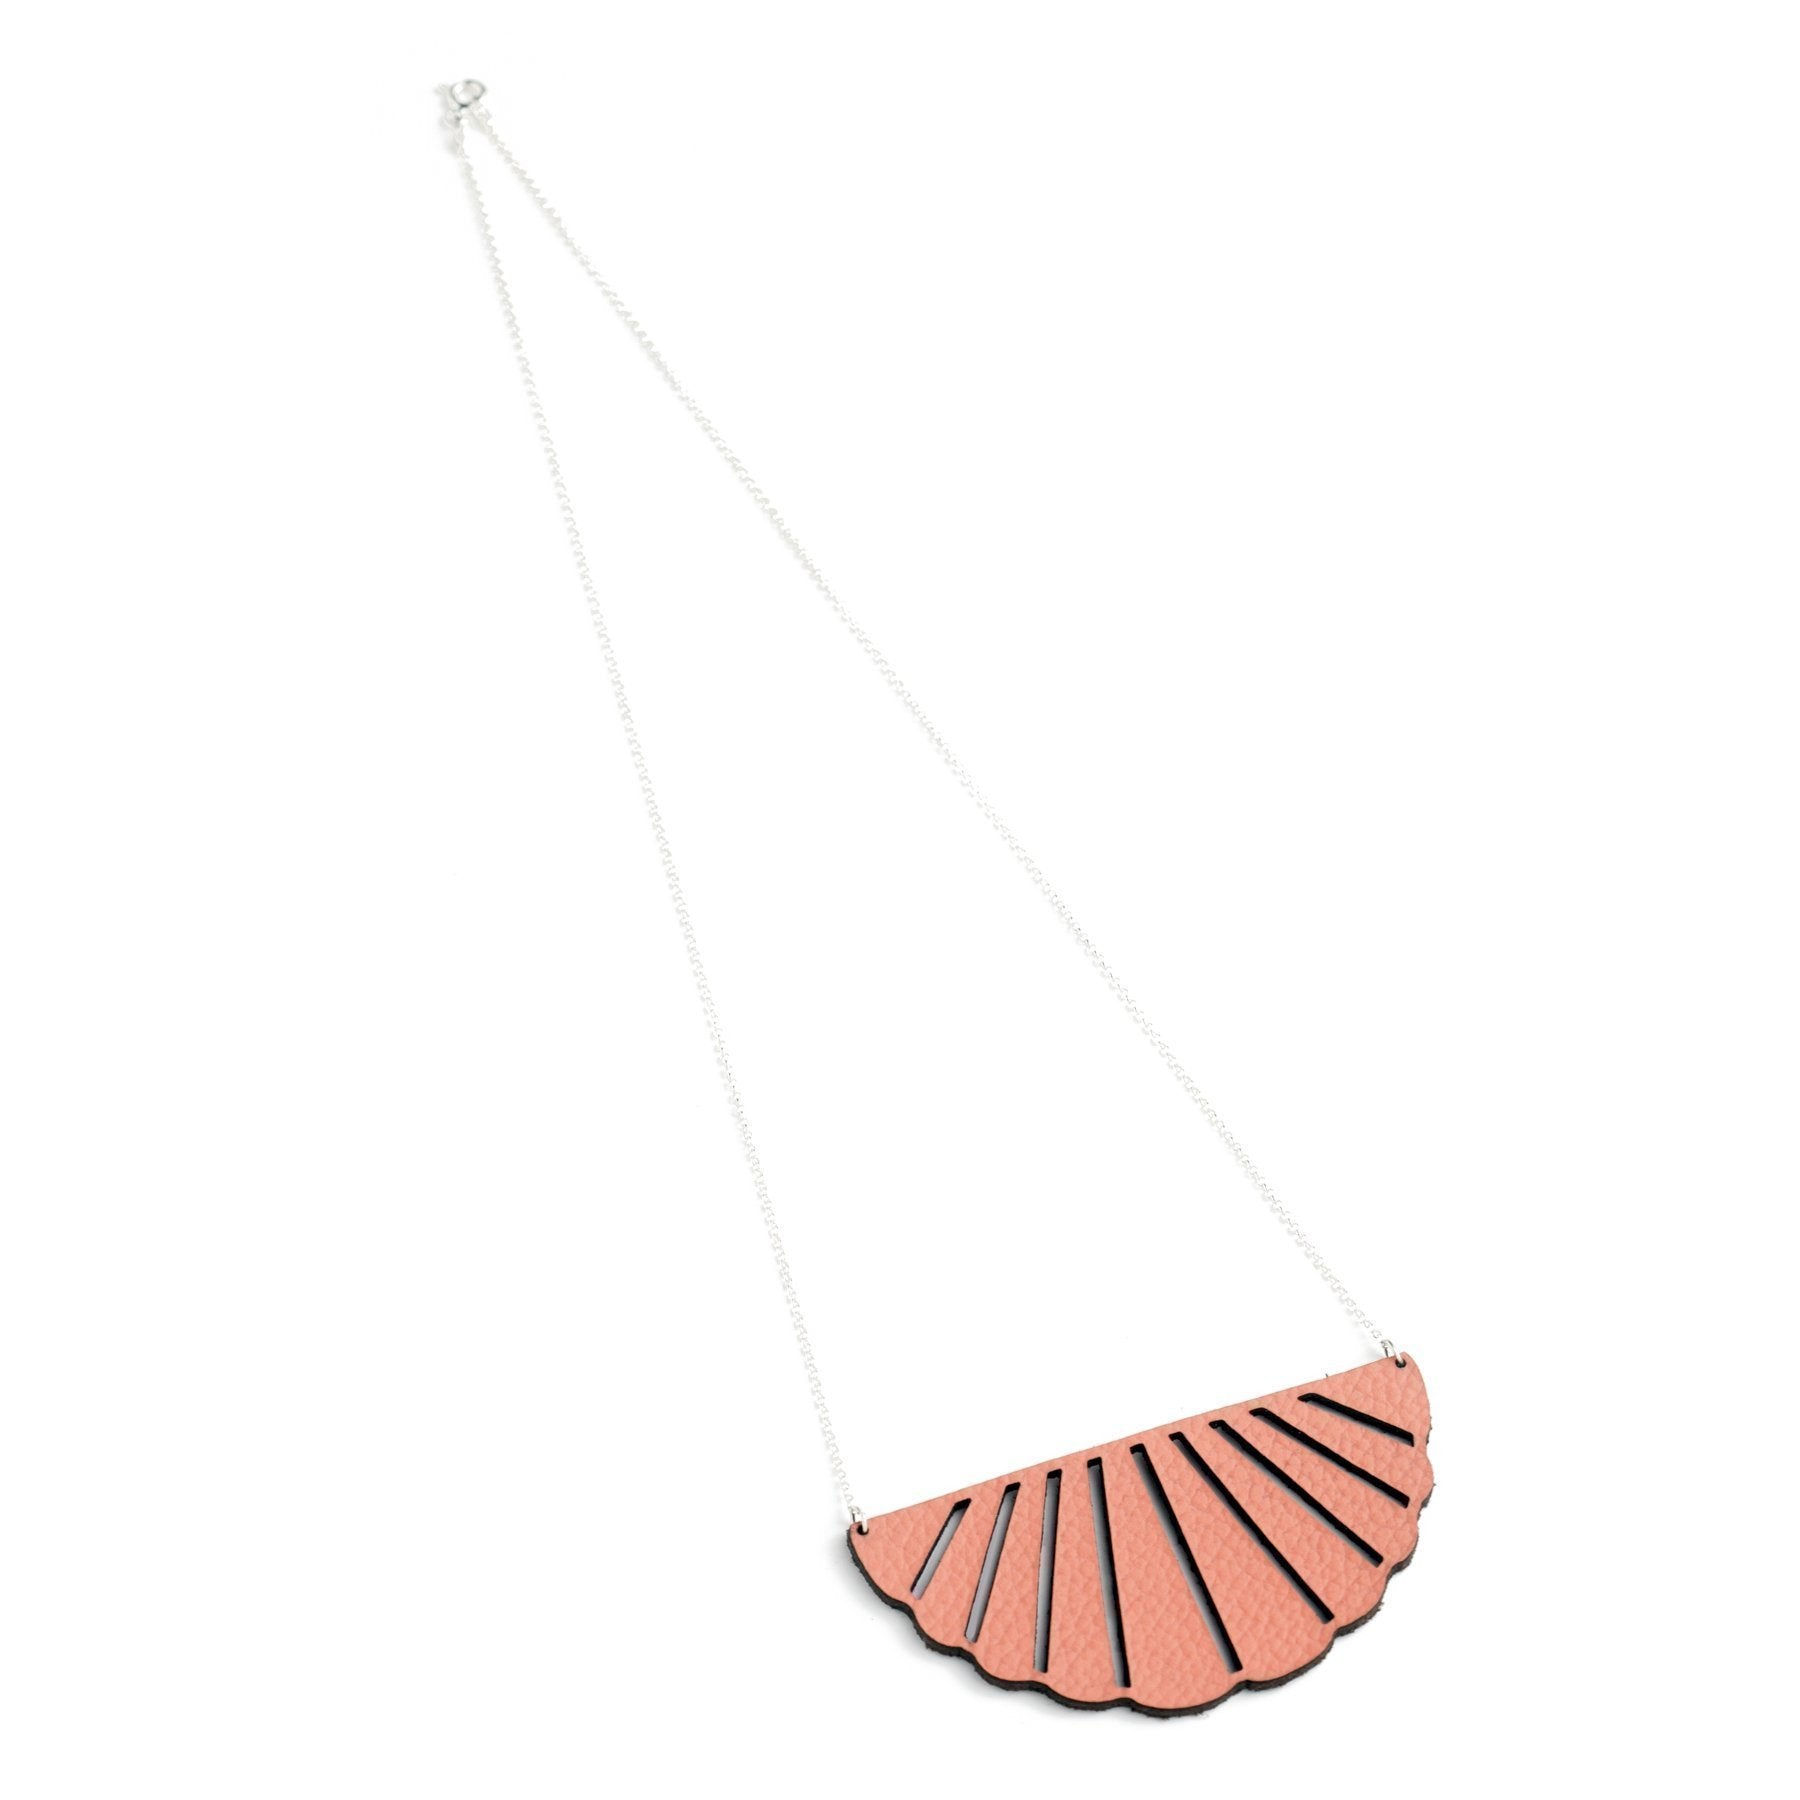 SCALLOPED LEATHER NECKLACE CORAL BY WHITE RABBIT DAYS JEWELRY. These color-popping, scalloped leather necklaces are available in a variety of colors.They hang on a sterling silver chain - perfect to peep out under a collared shirt or with a summer dress